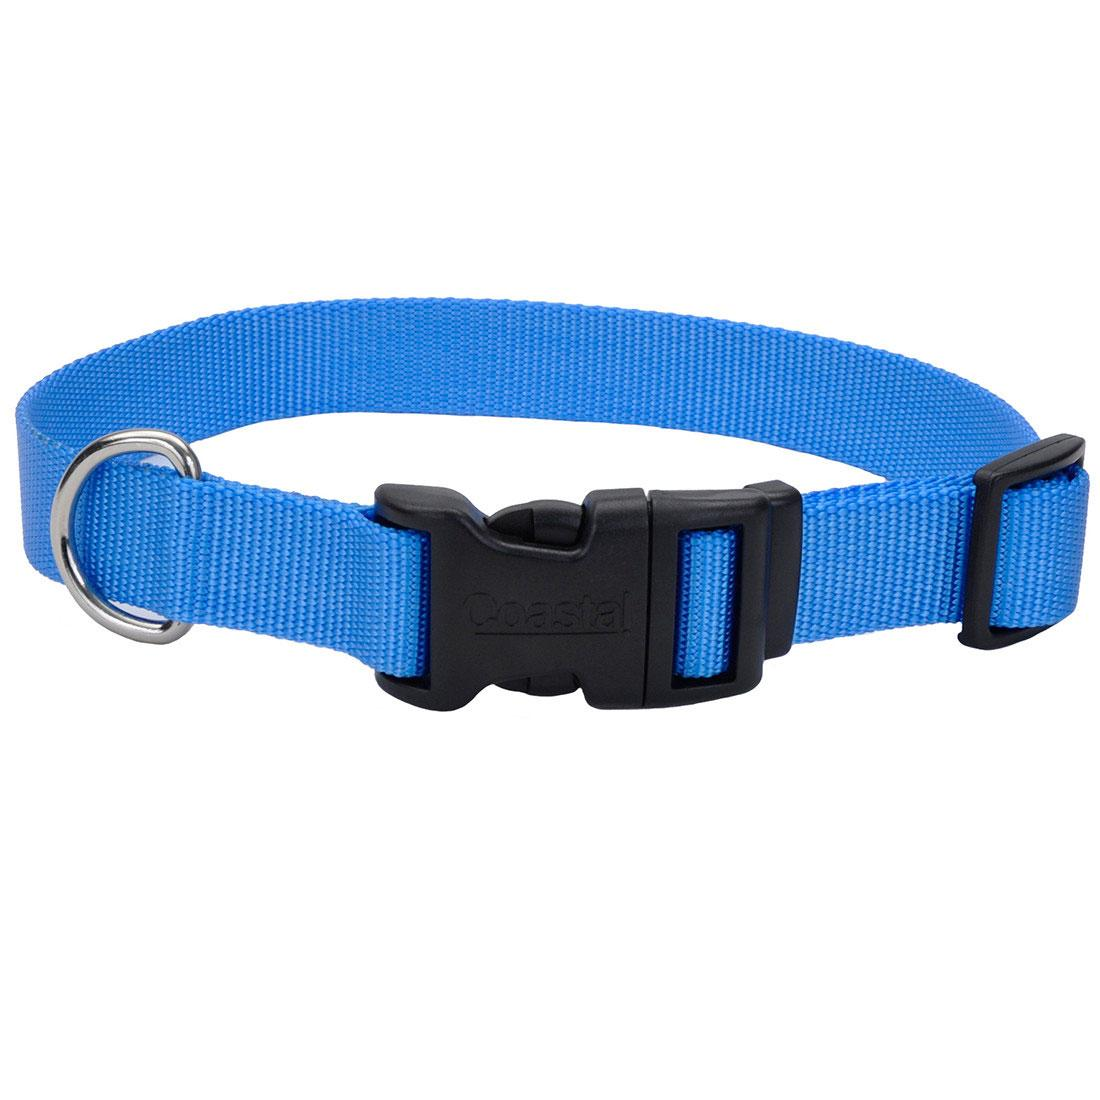 Coastal Adjustable Collar with Plastic Buckle for Dogs, Blue Lagoon Image